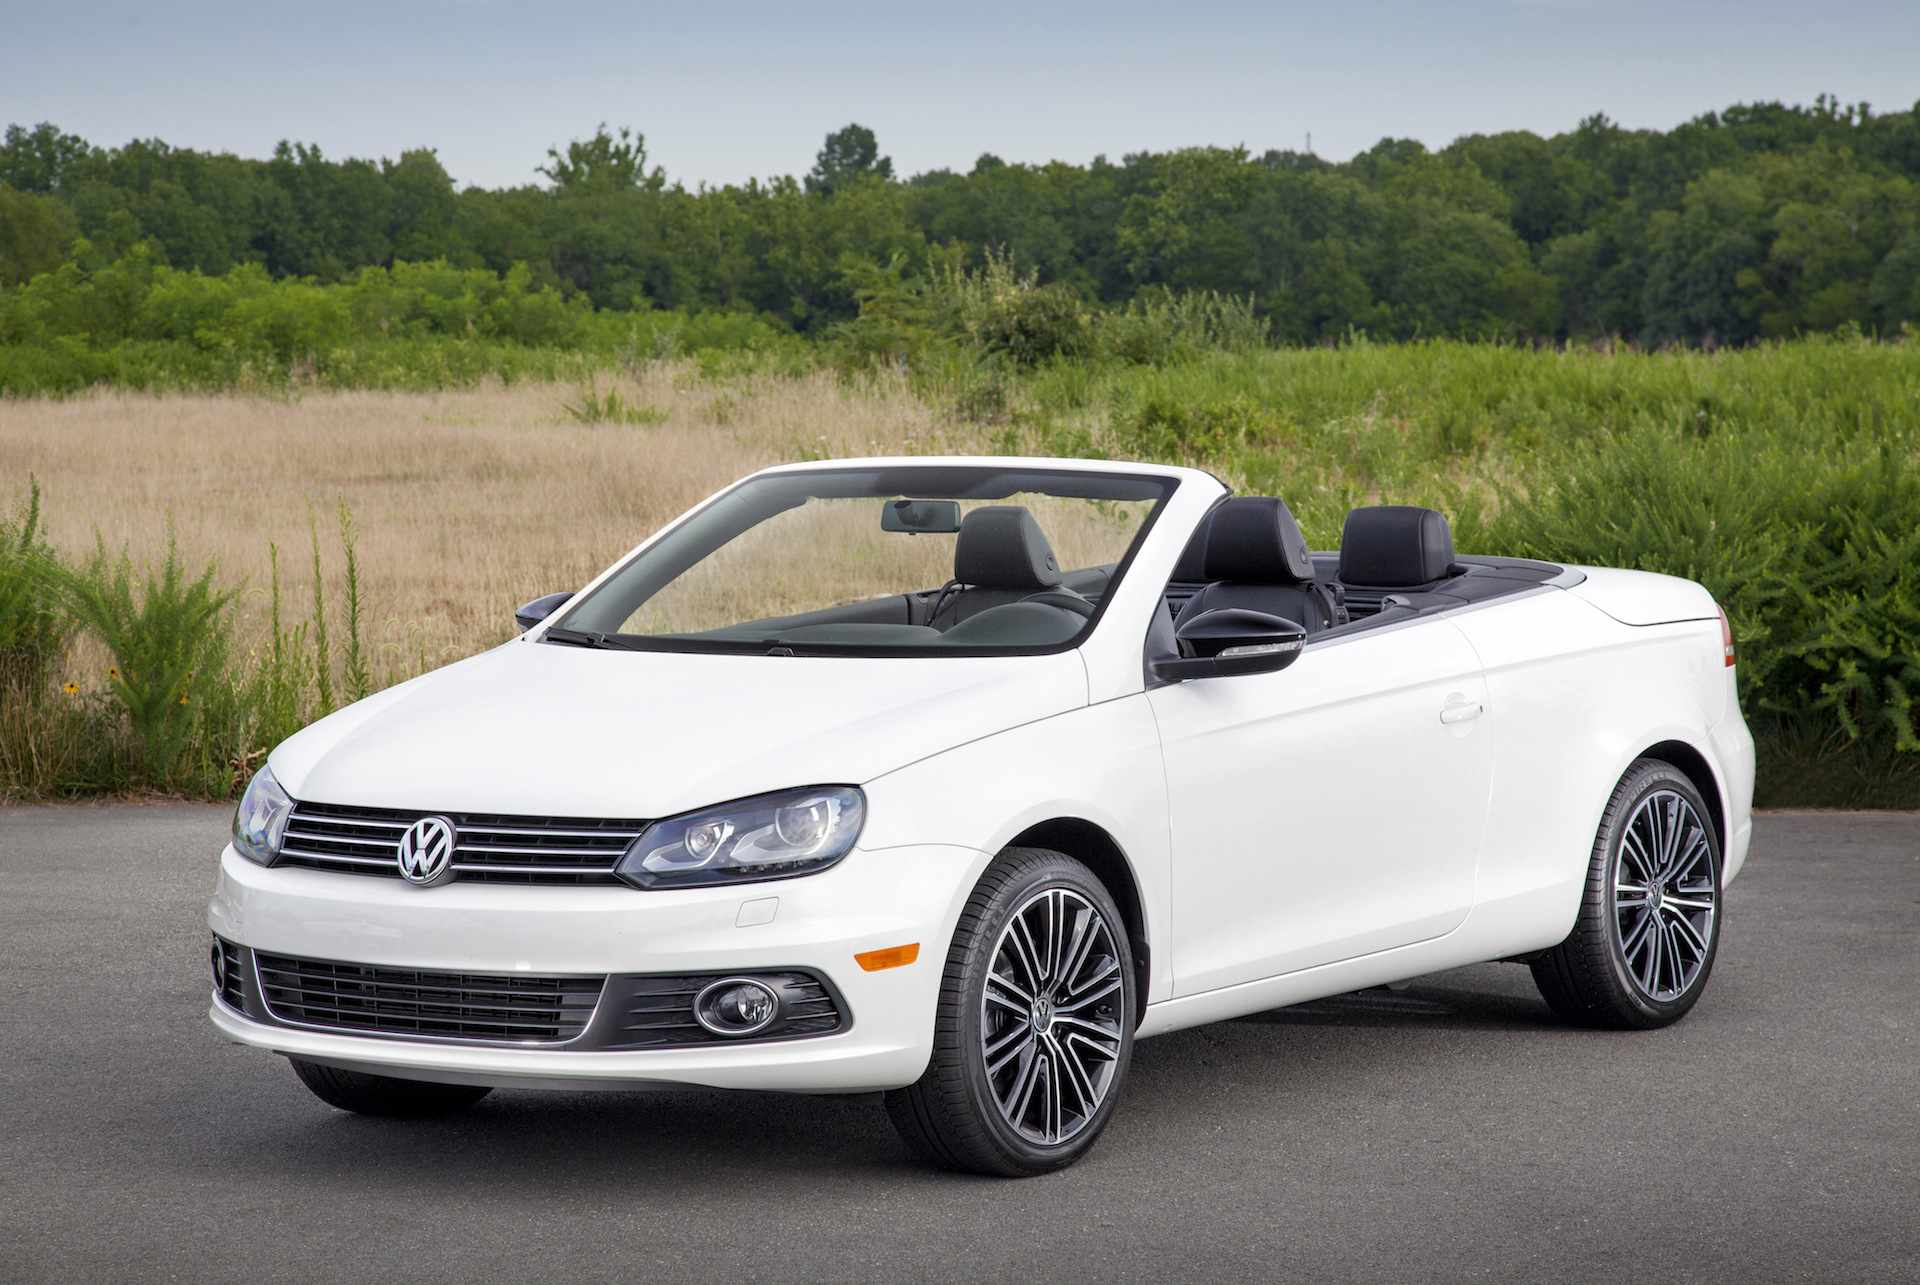 Alfa Romeo Los Angeles >> 2016 Volkswagen Eos (VW) Review, Ratings, Specs, Prices ...